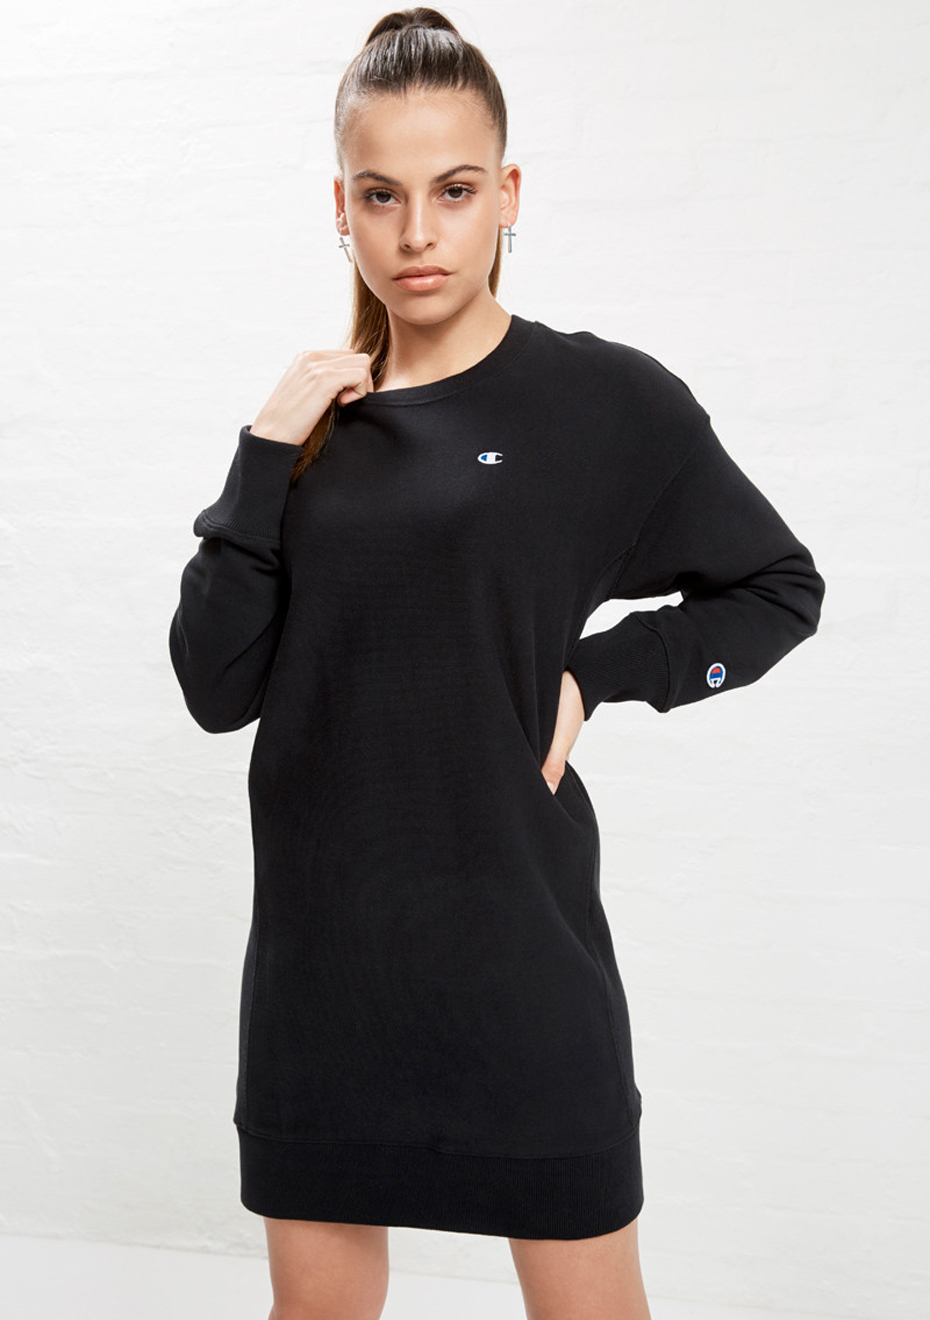 Sweatshirt Black Champion New Dress rCexdBo